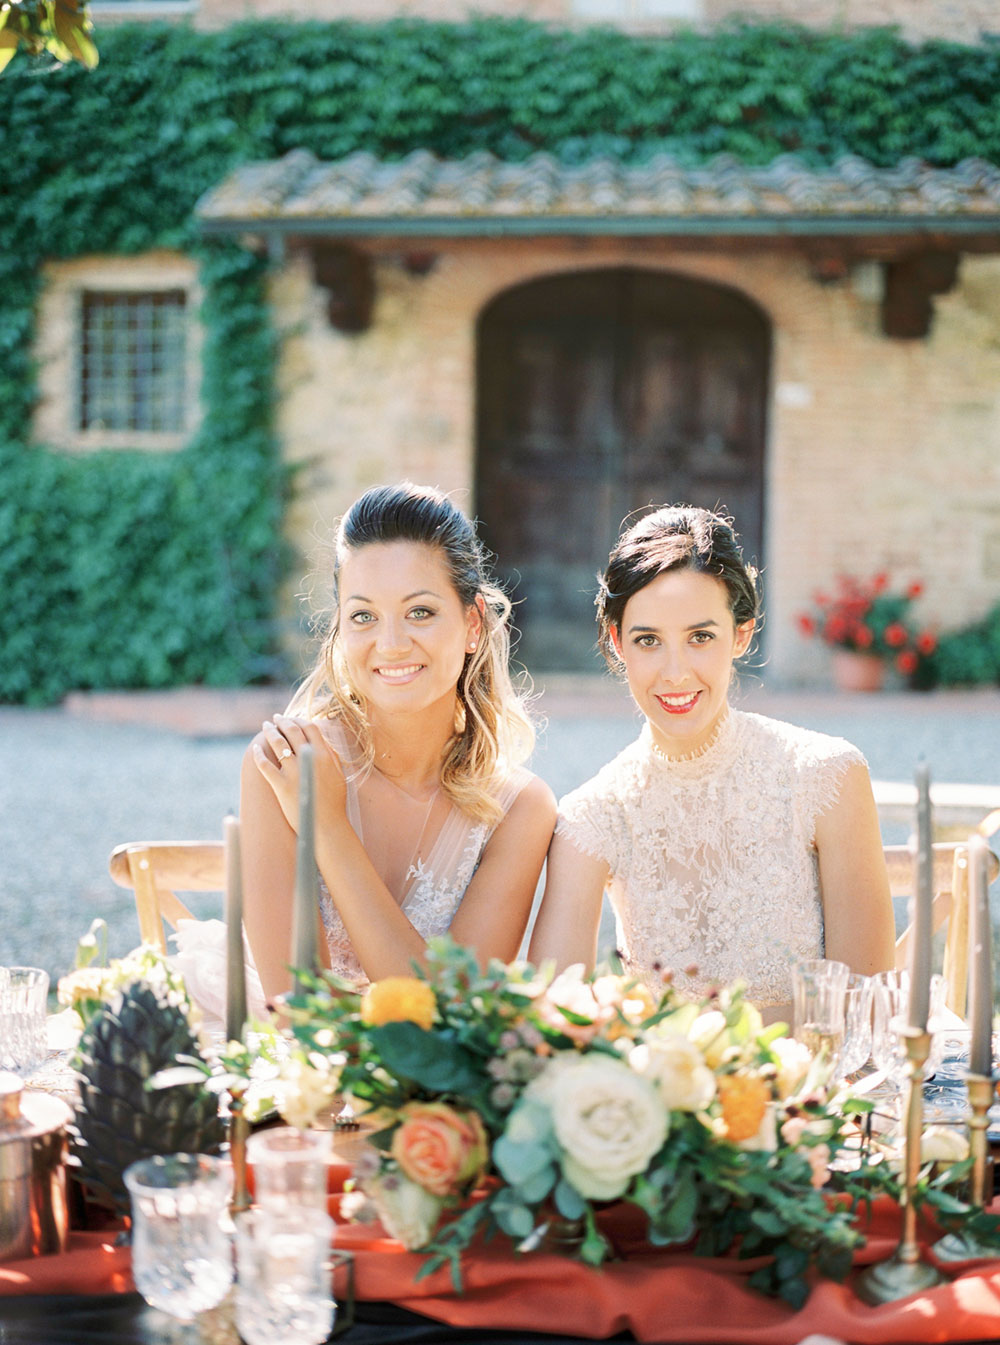 Linari-Tuscany-Elopement-Courtney-Michaela-214